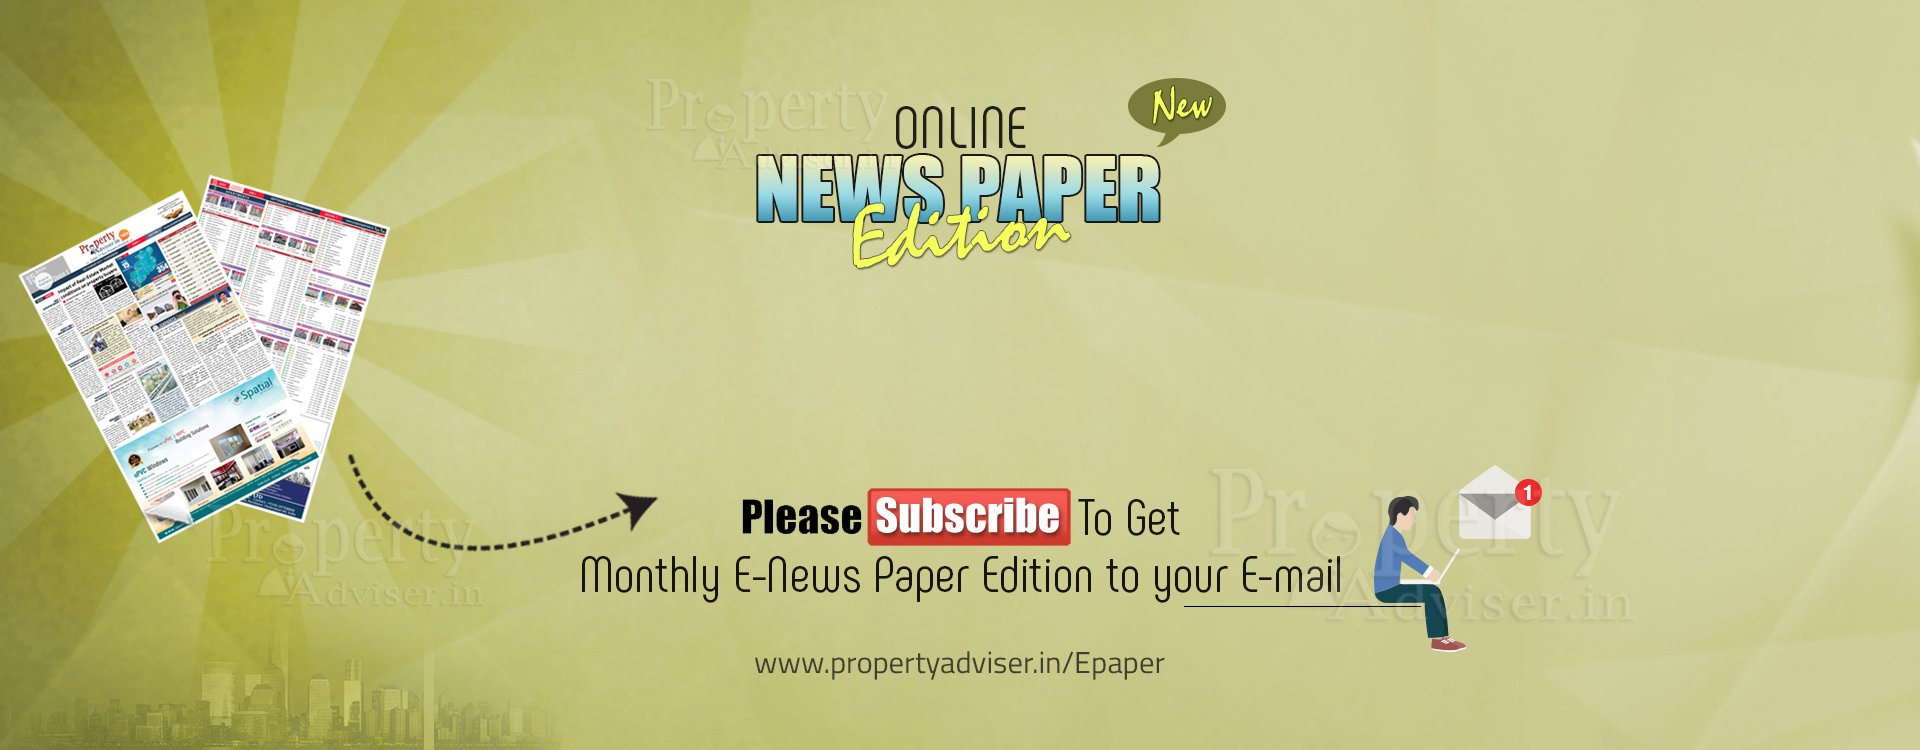 All Residential Projects of Hyderabad are available on Epaper with Market Trends